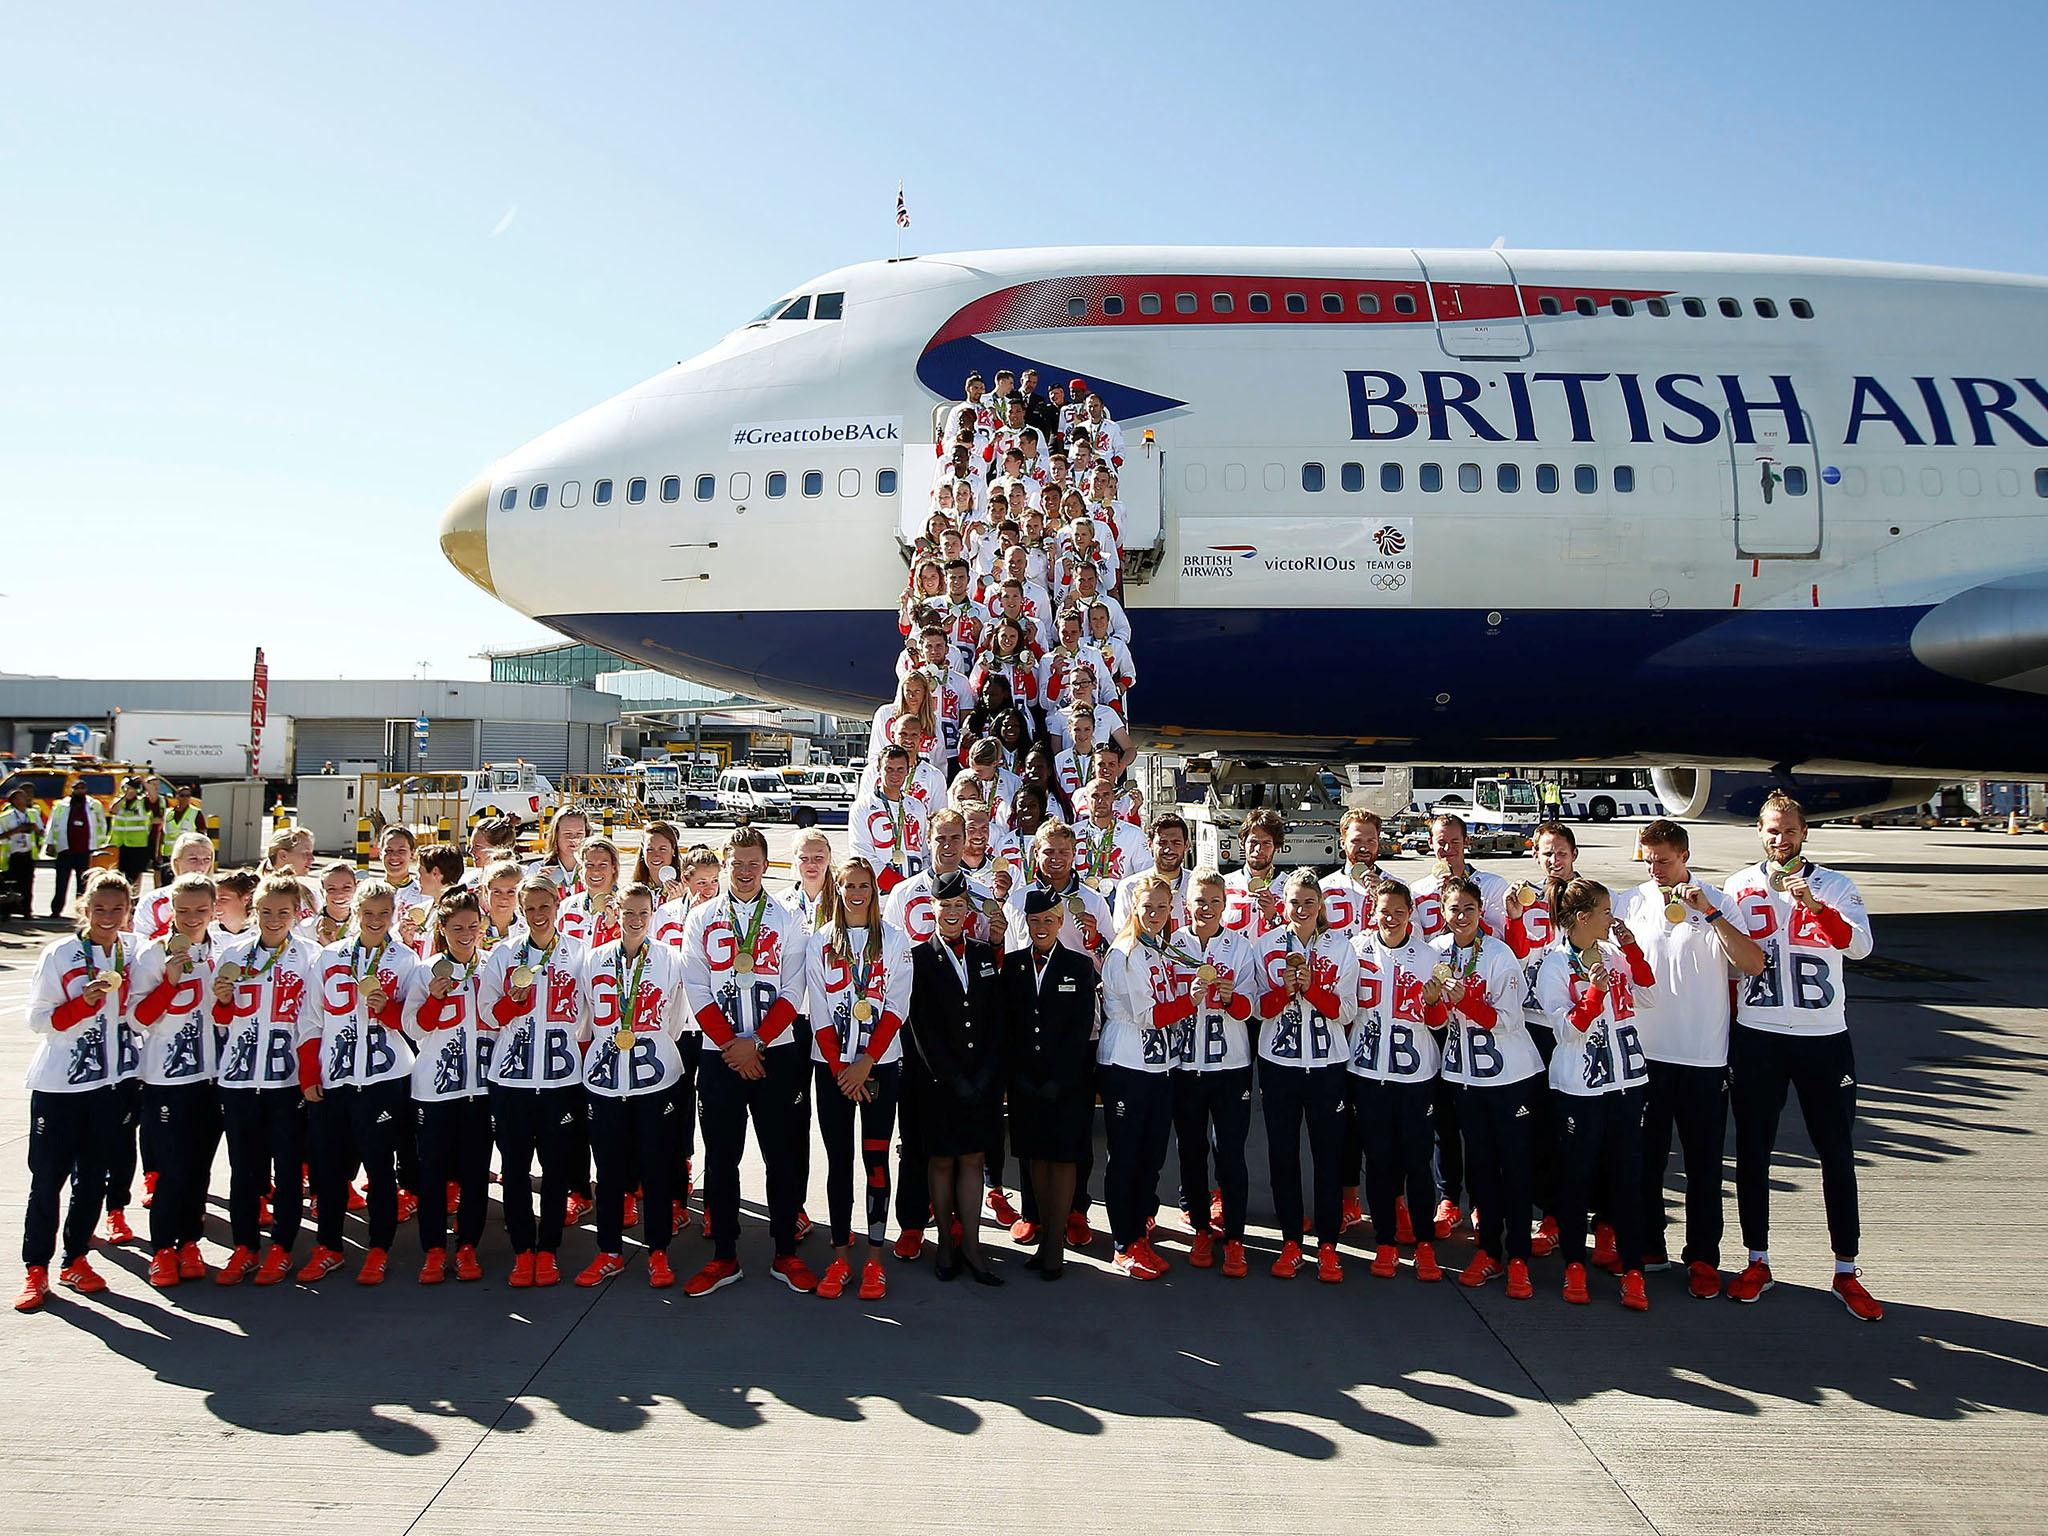 Team GB brings some Rio magic to Heathrow as our Olympic heroes touch down